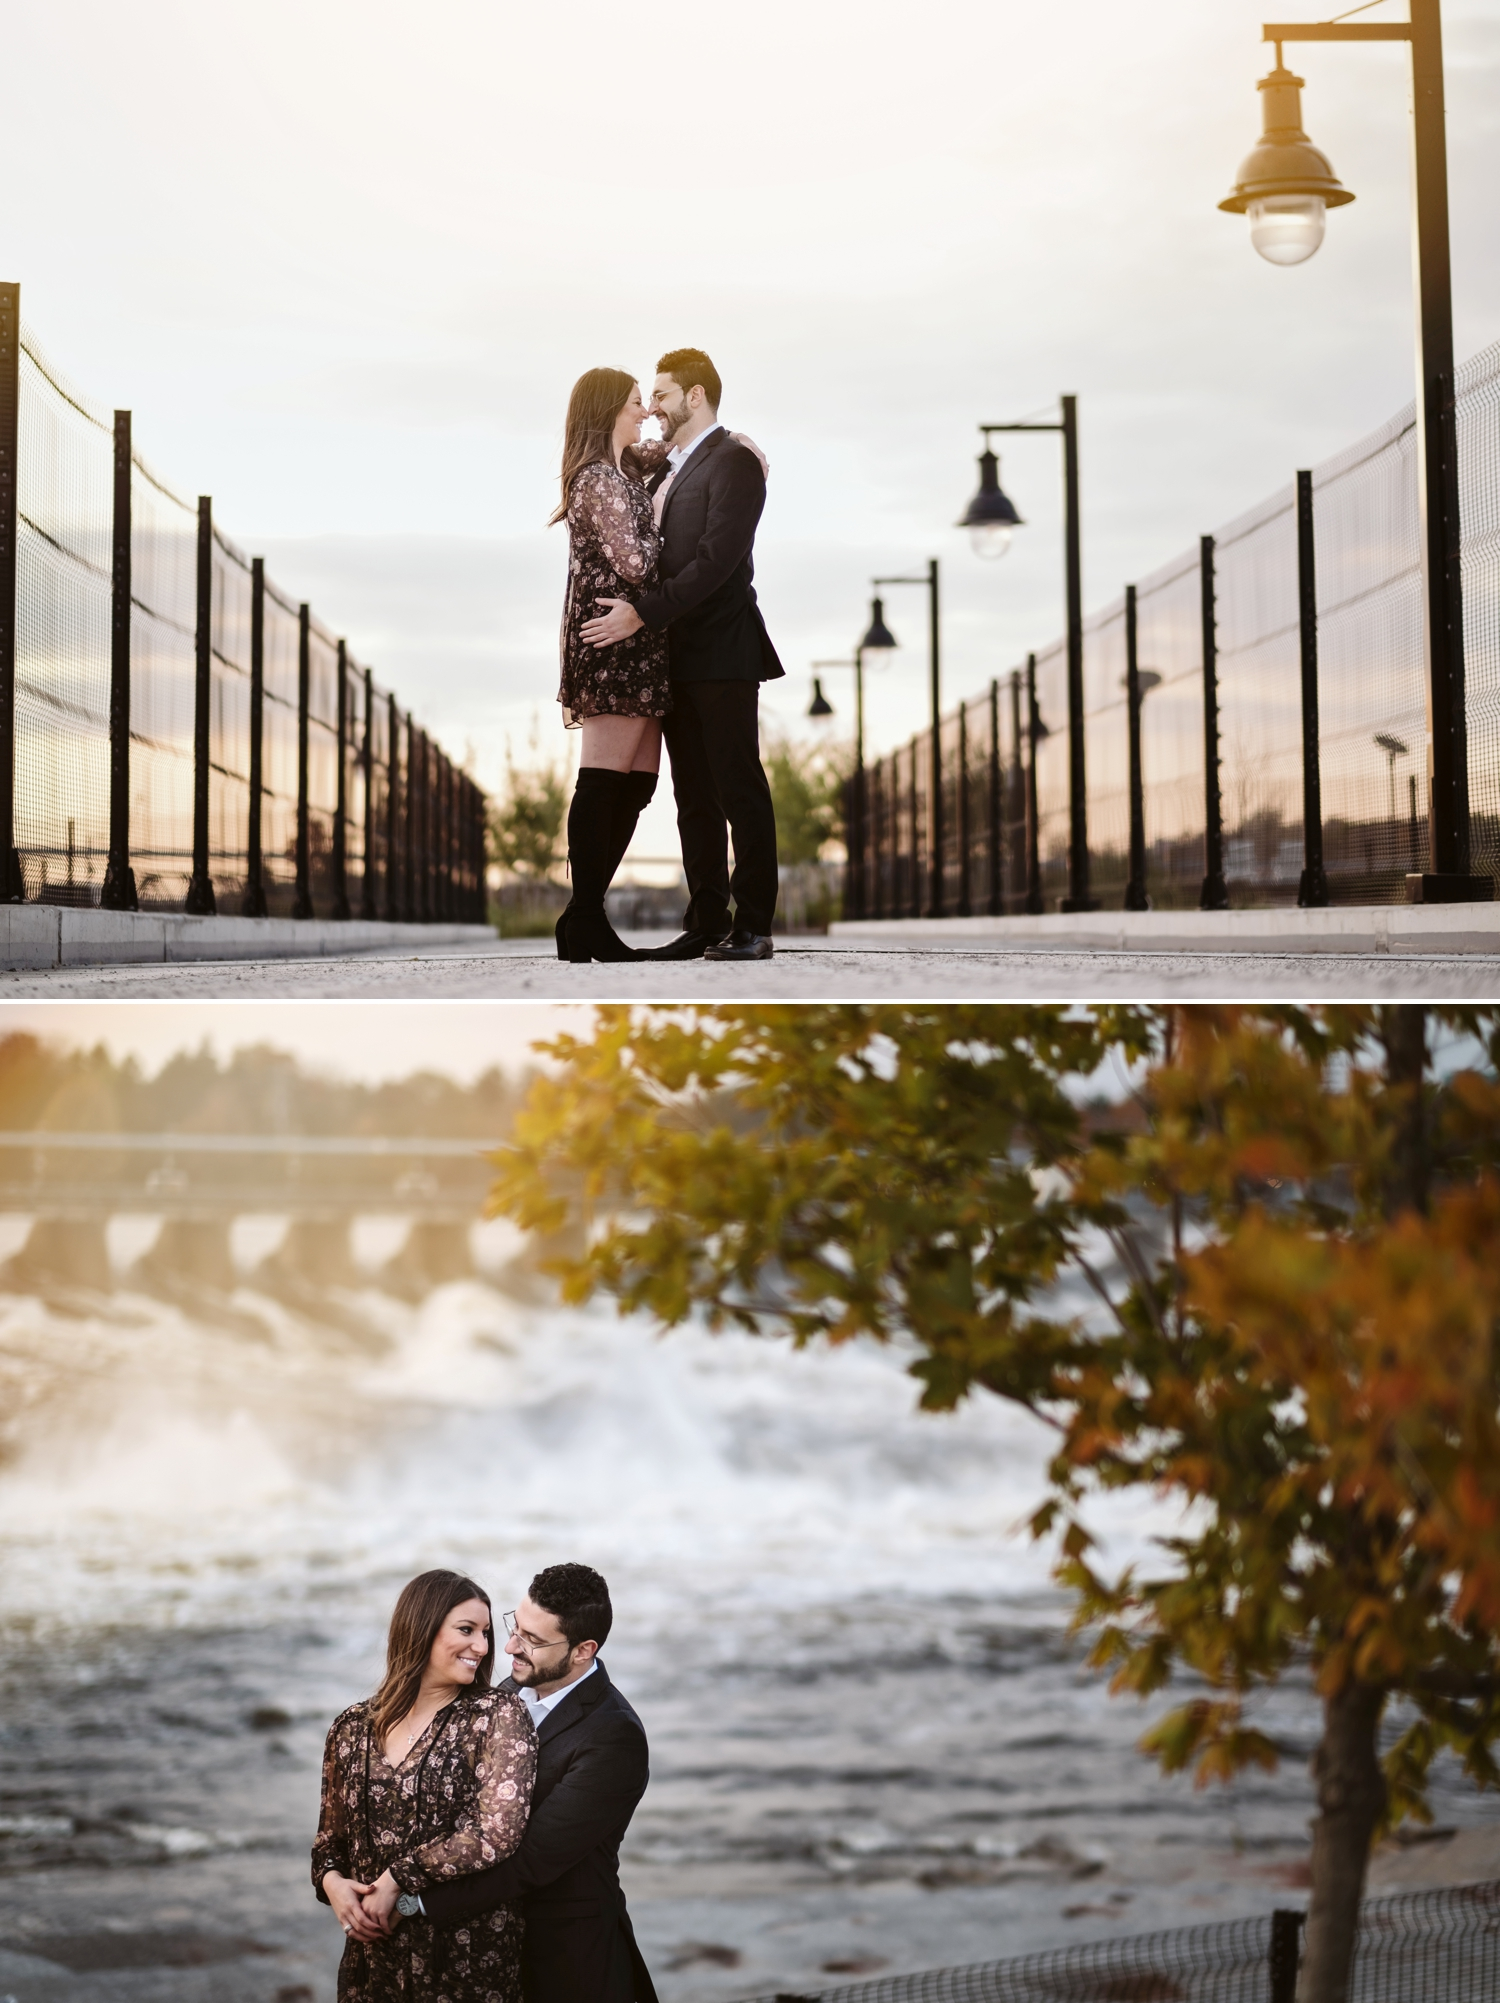 photo of engaged couple near the zibi project in ottawa ontario during sunset